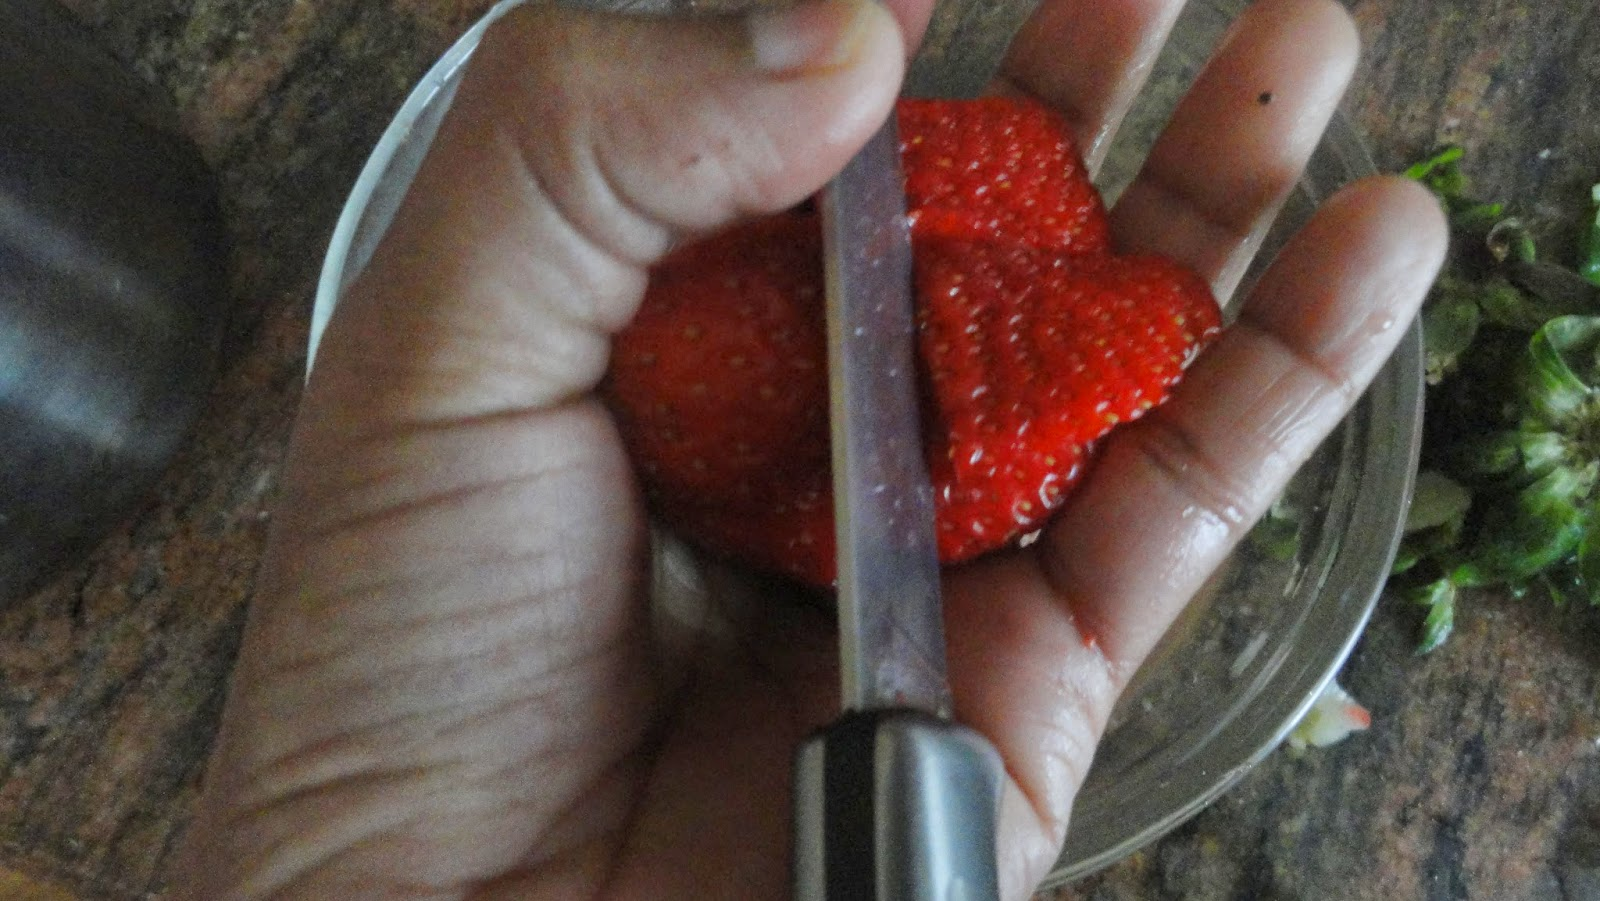 Cut the strawberry